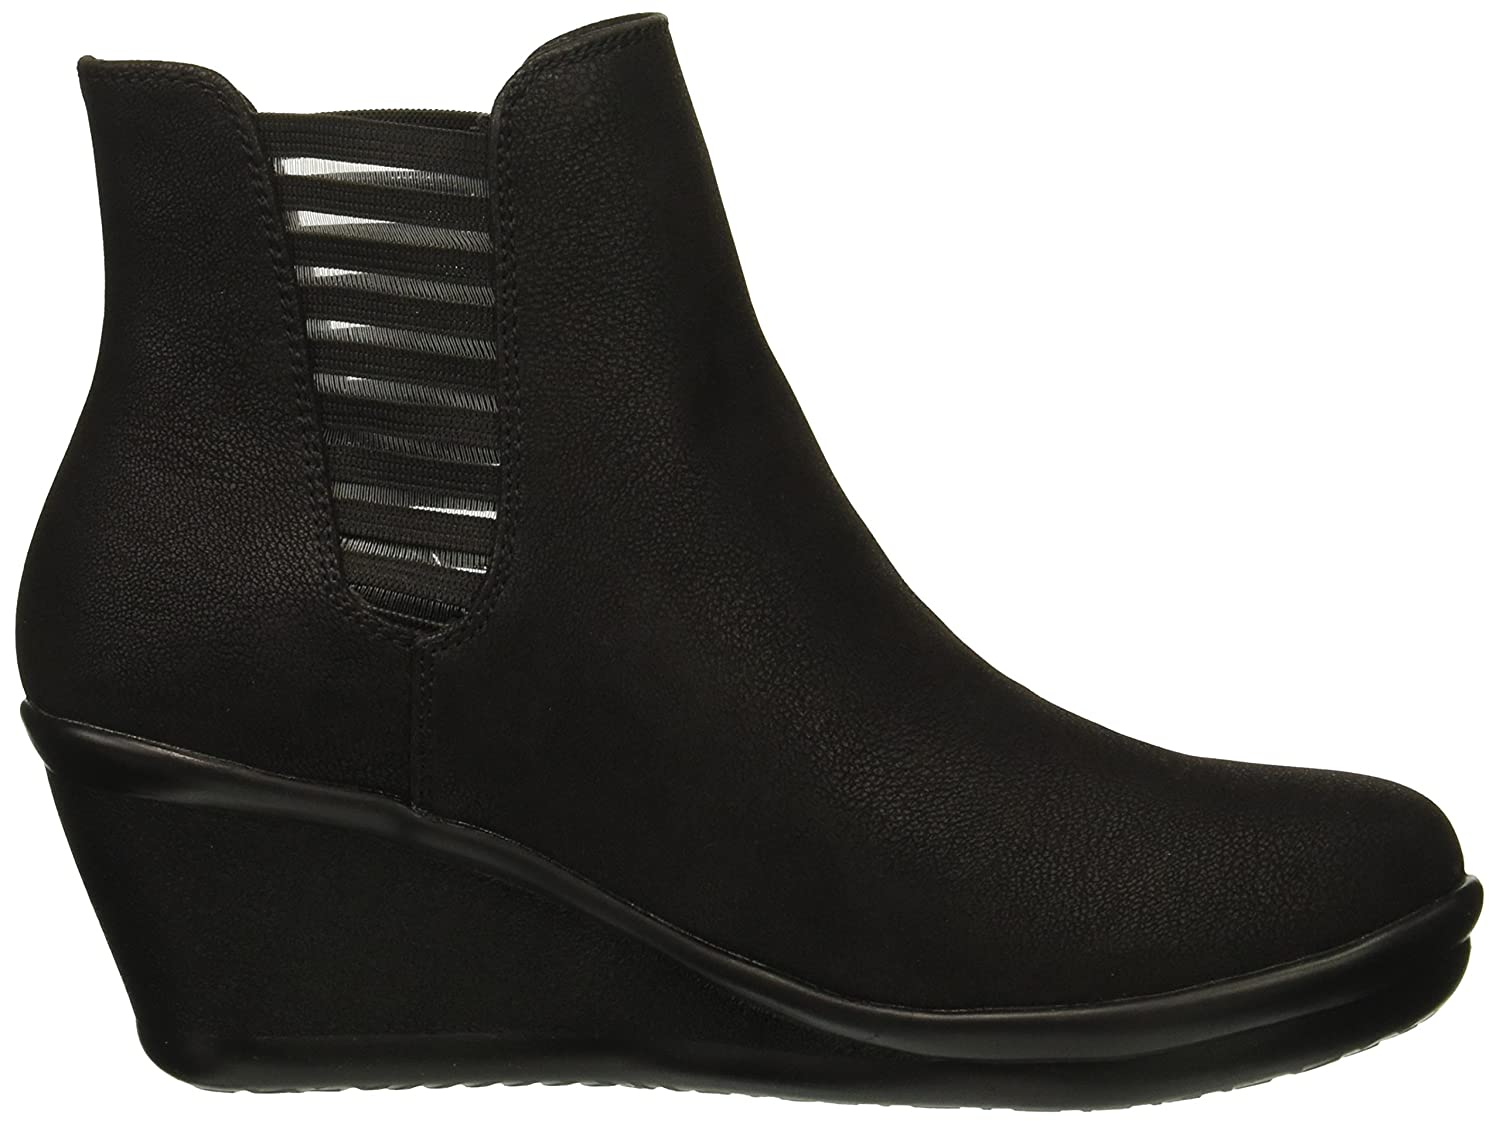 Skechers Women's Rumblers-Beam Me up-Wedge Heeled Dressy Casual Striped Gore Chelsea Boot B079HLZ5QP 7.5 B(M) US|Black